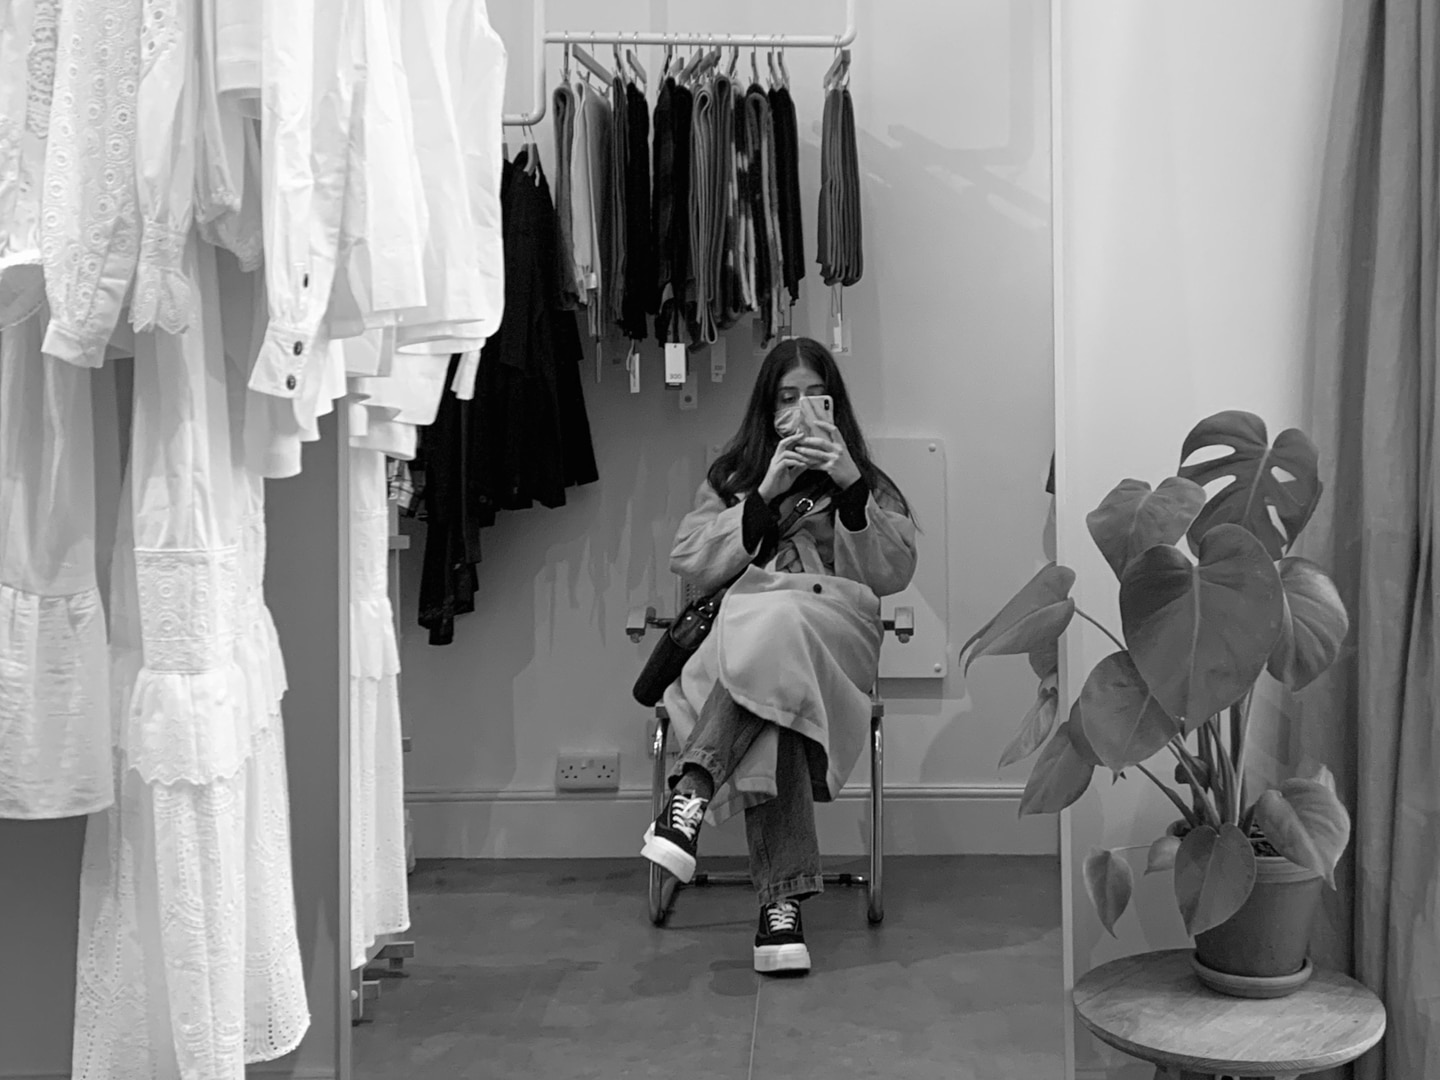 Besma takes a selfie in a shop mirror. Photo is in black and white.